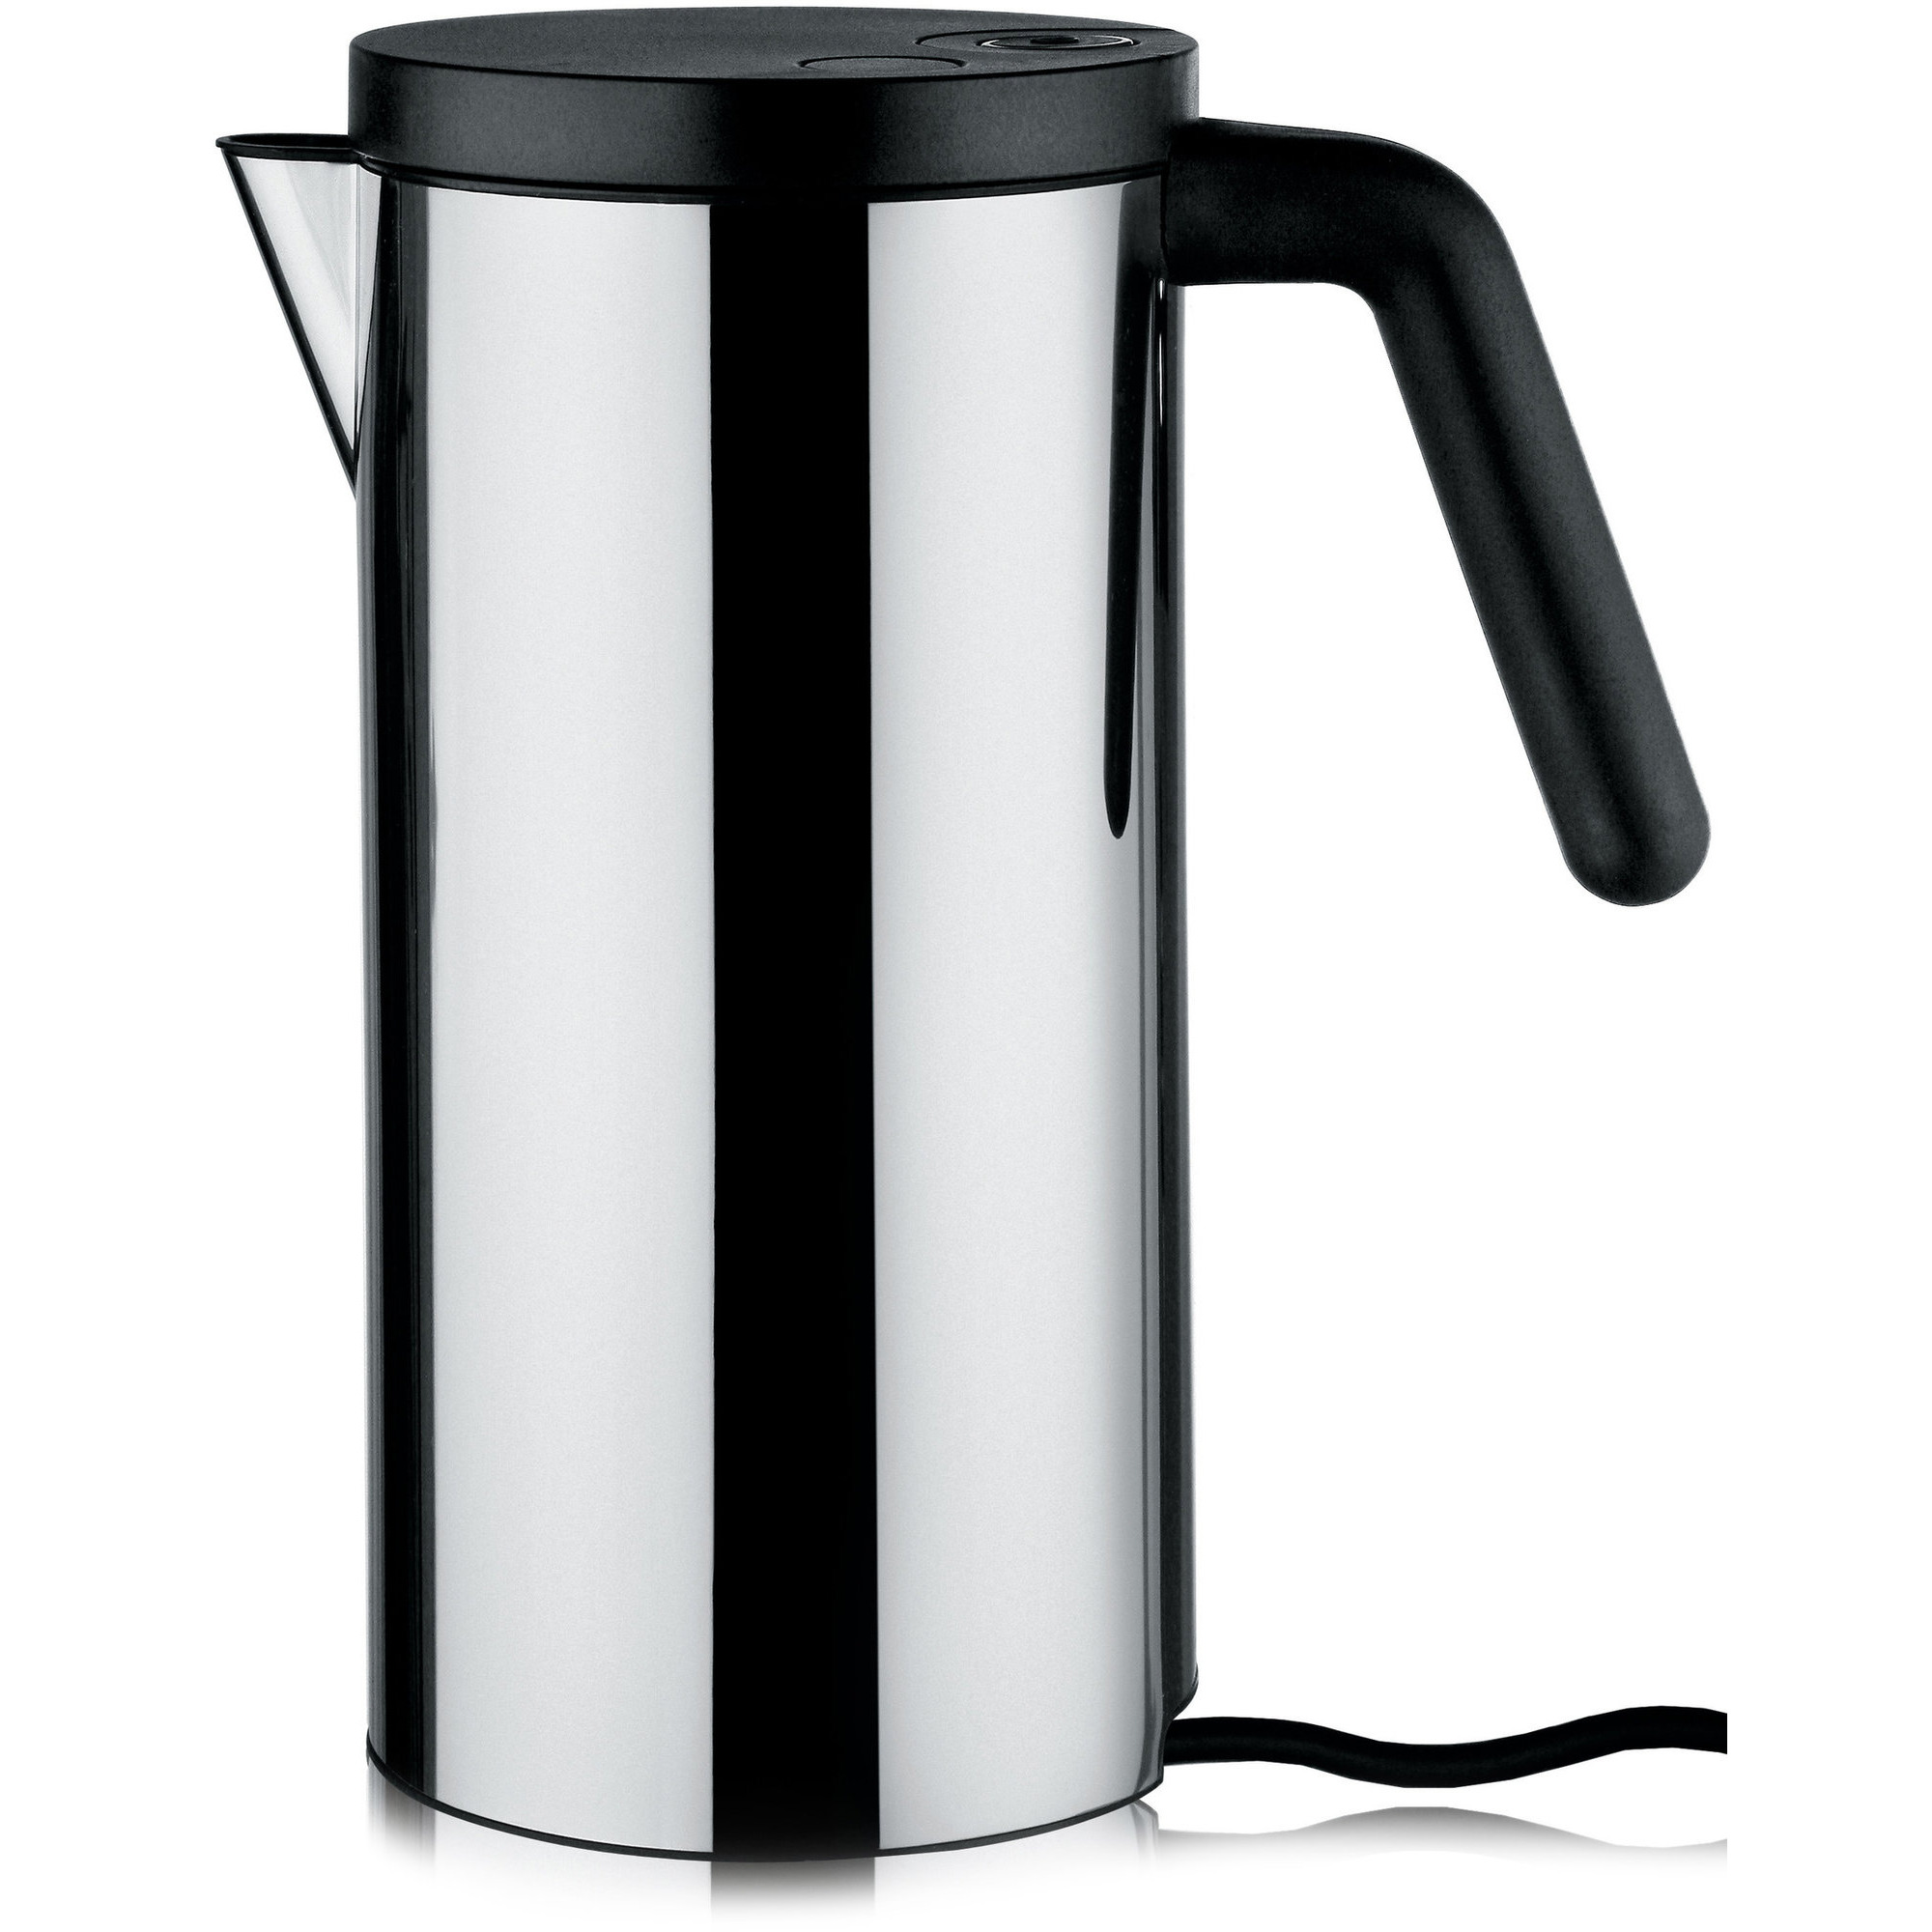 Alessi Hot-it Vattenkokare 1,4 liter